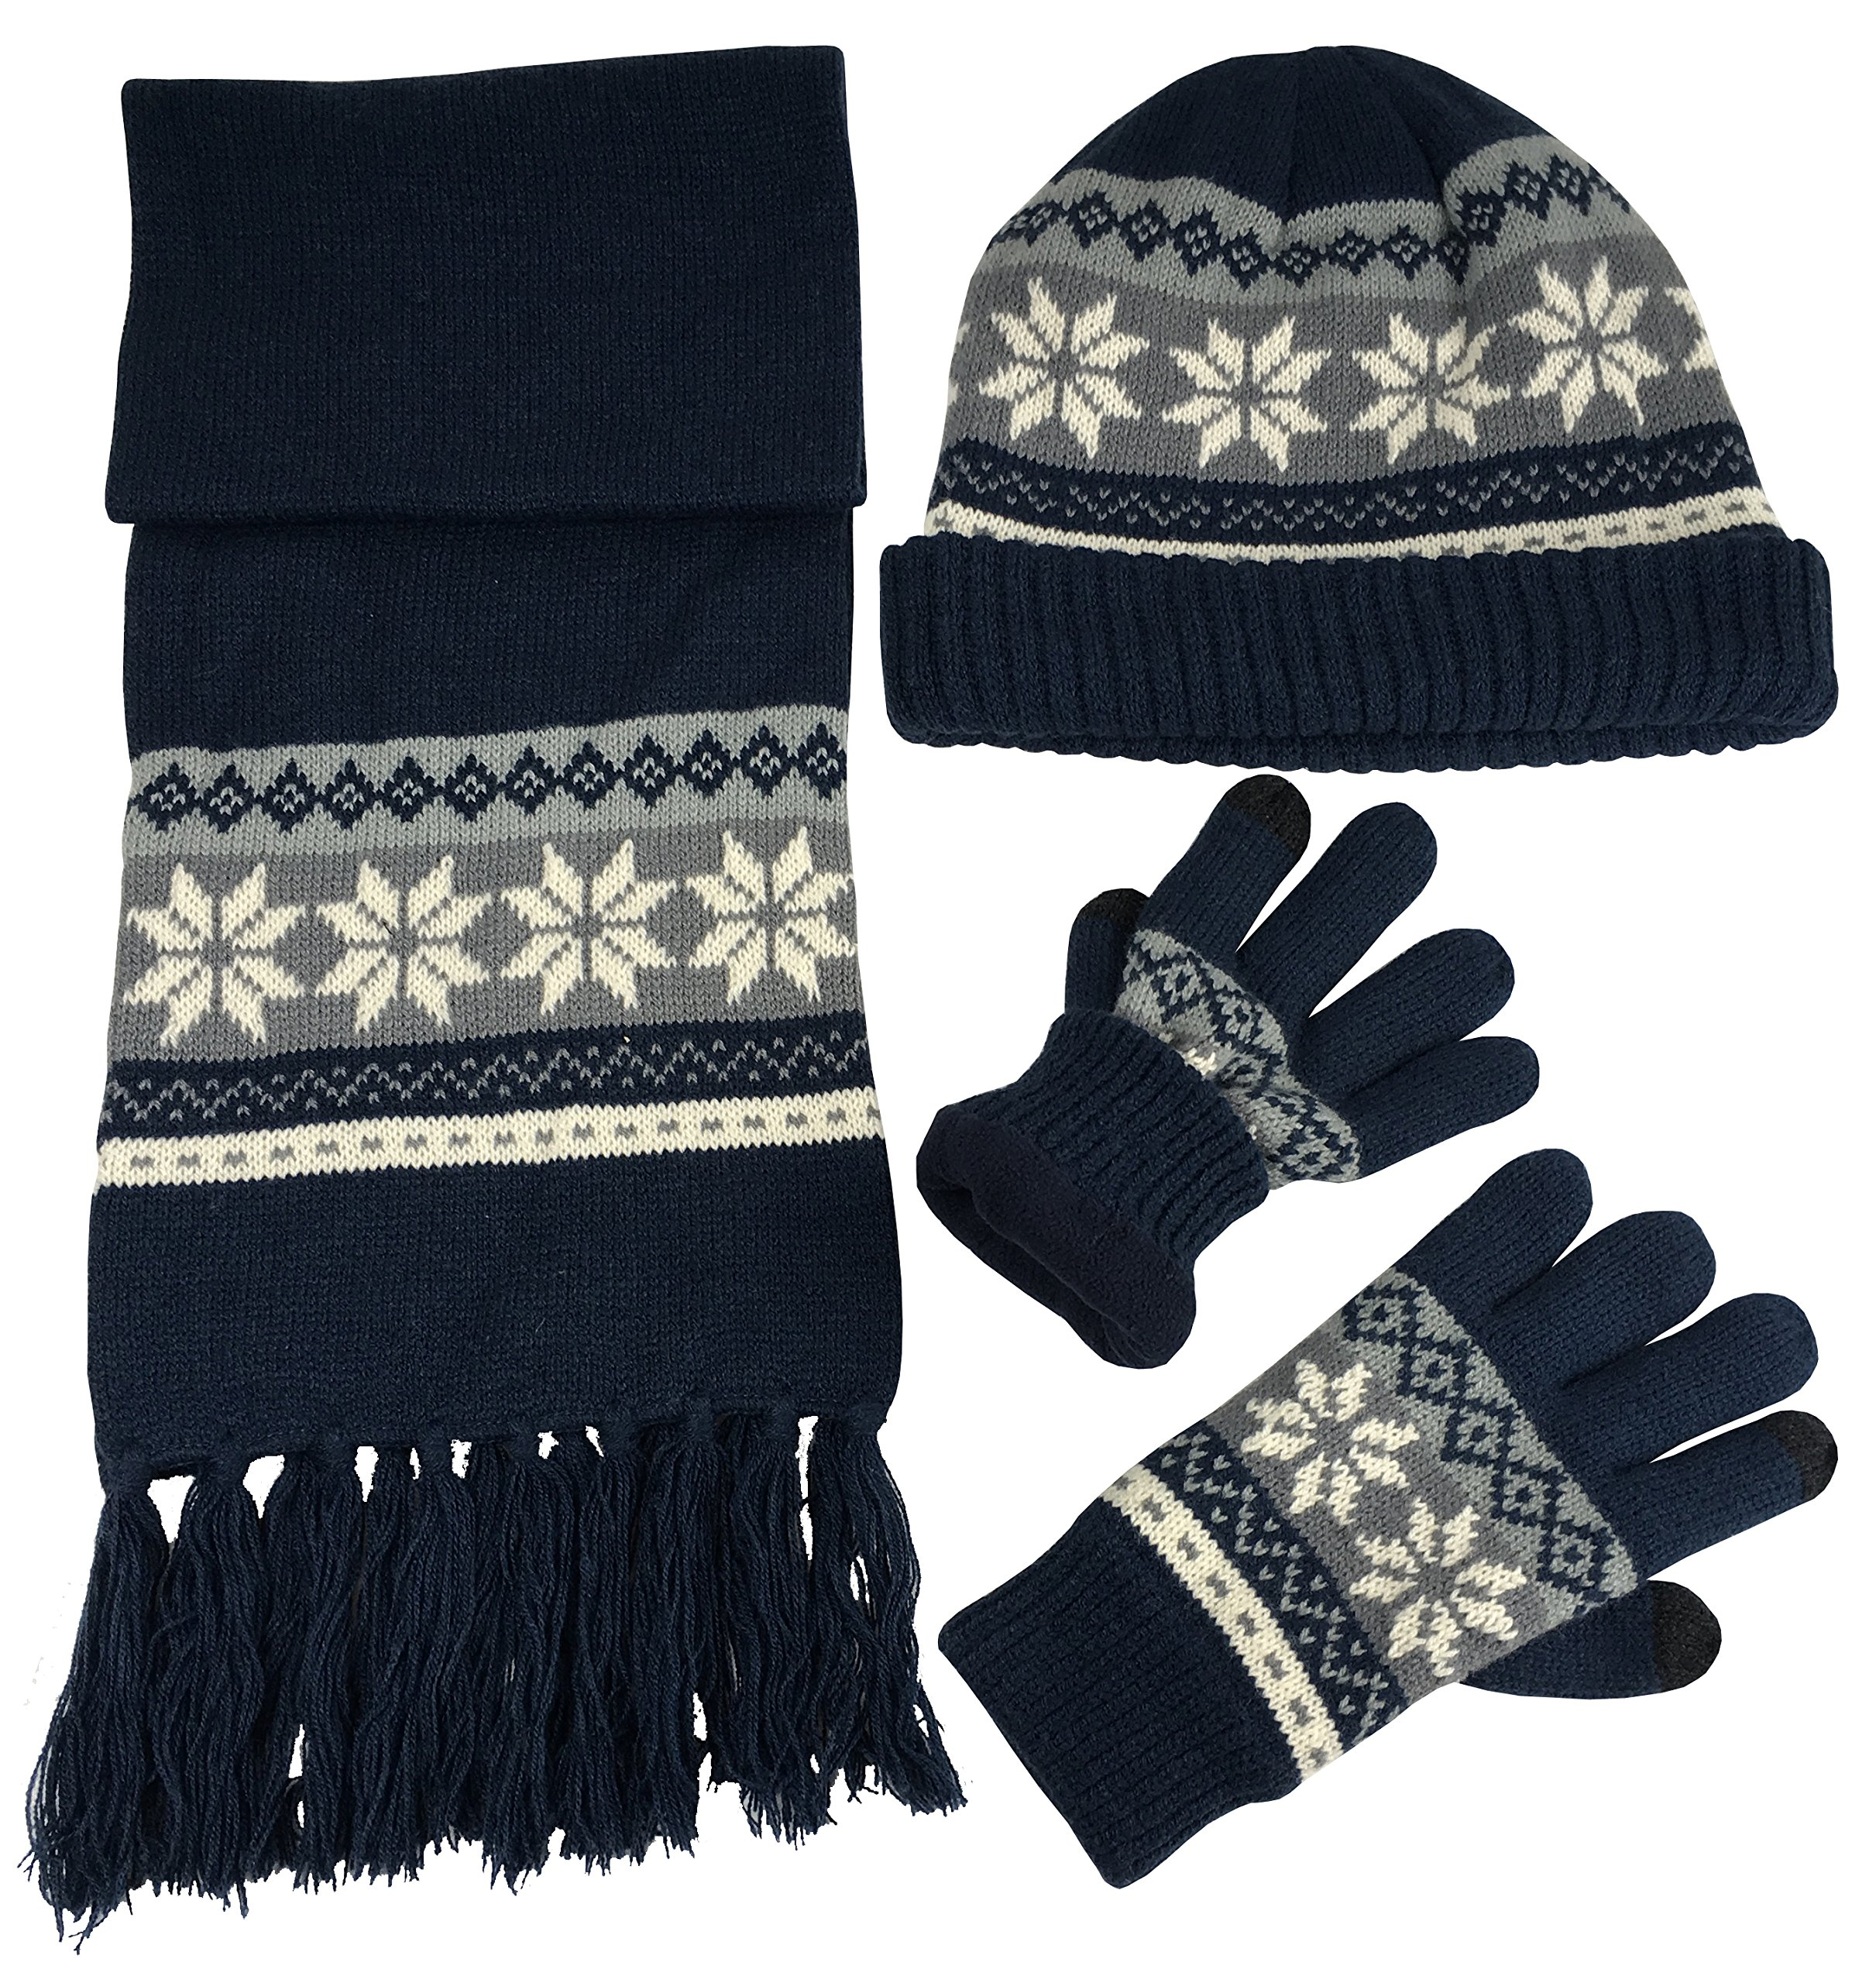 66a4bccc8dc Get Quotations · N Ice Caps Boys Bulky Cable Knit Hat Scarf Gloves 3PC Set  Snowflake Design